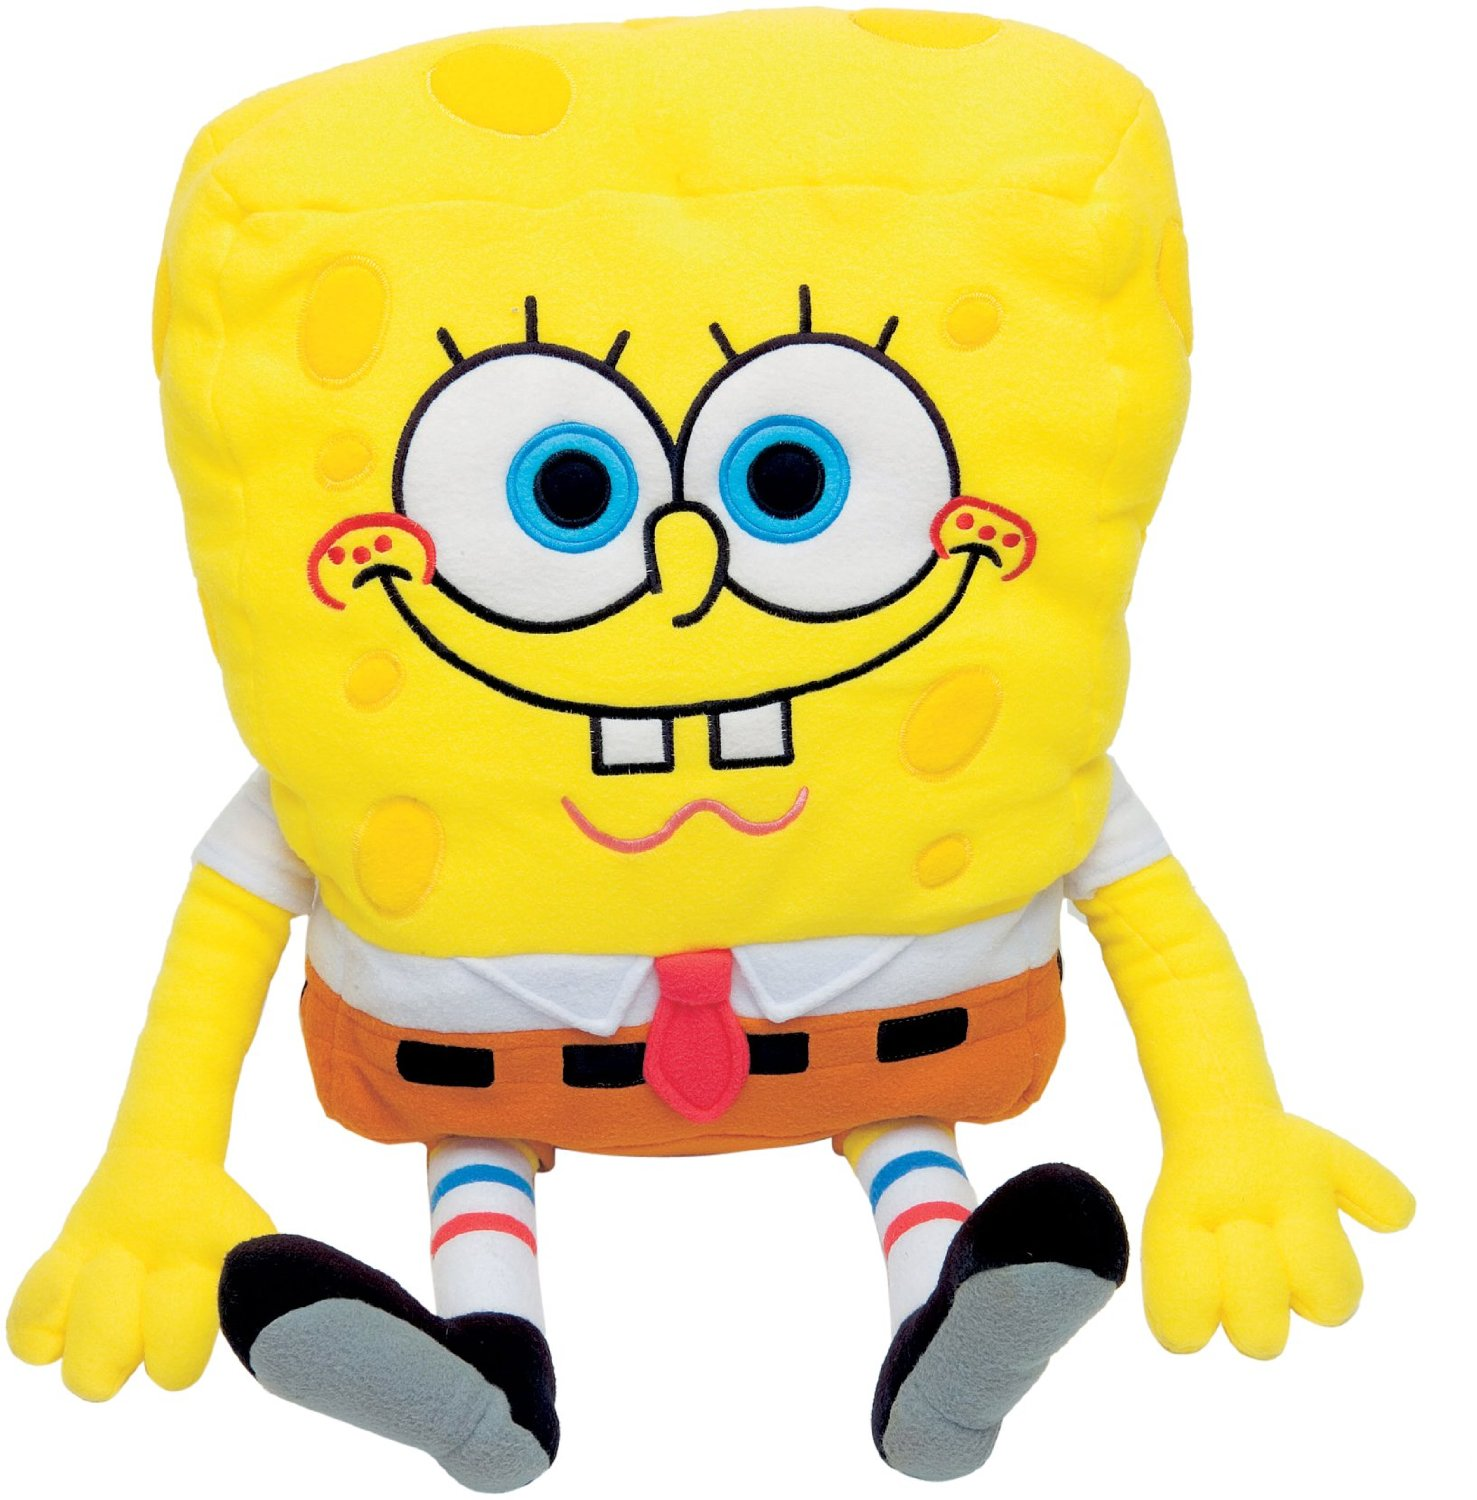 Spongebob Squarepants Pillow